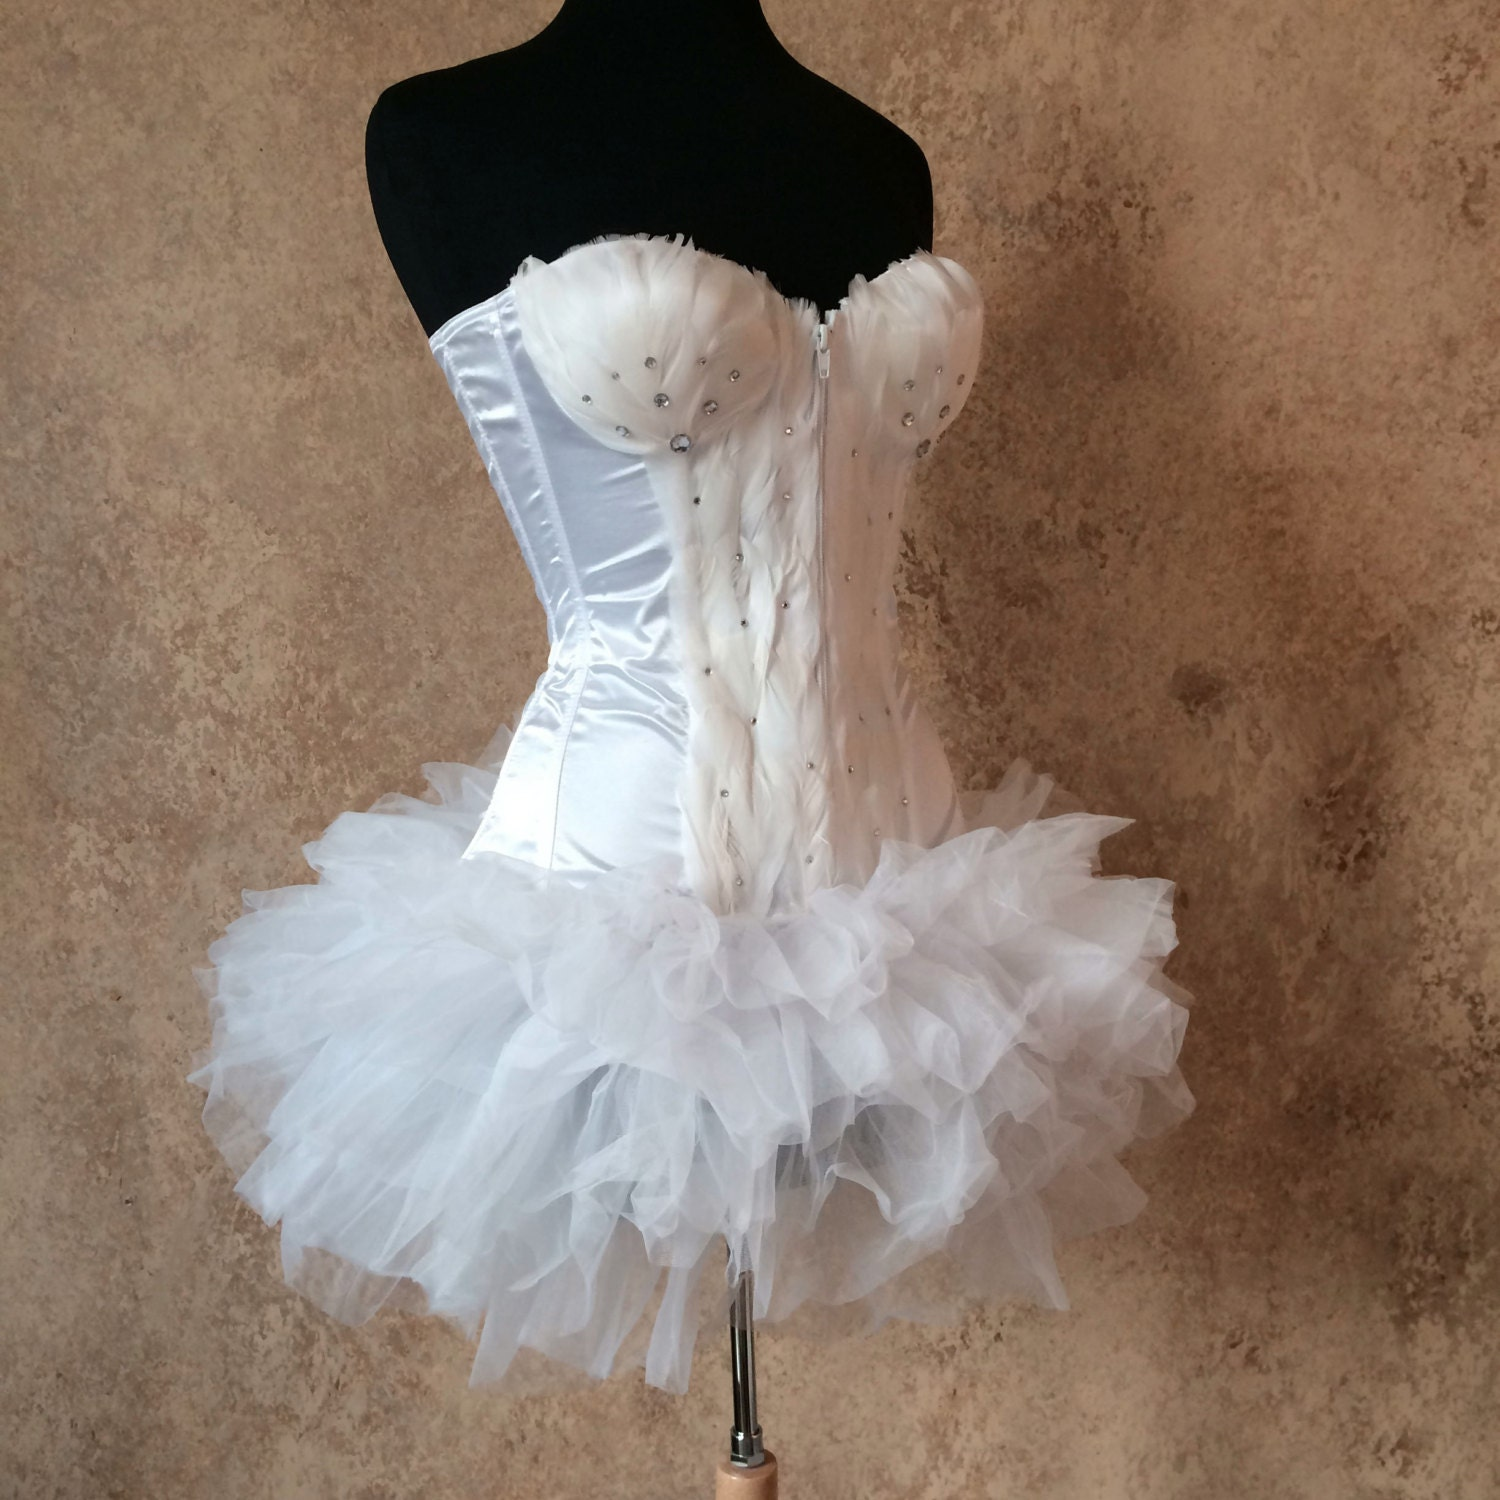 d31e5ddd4f Pick Size-White Swan Crystal Feather Costume w/Layered Tulle Tutu Skirt  Burlesque Theater